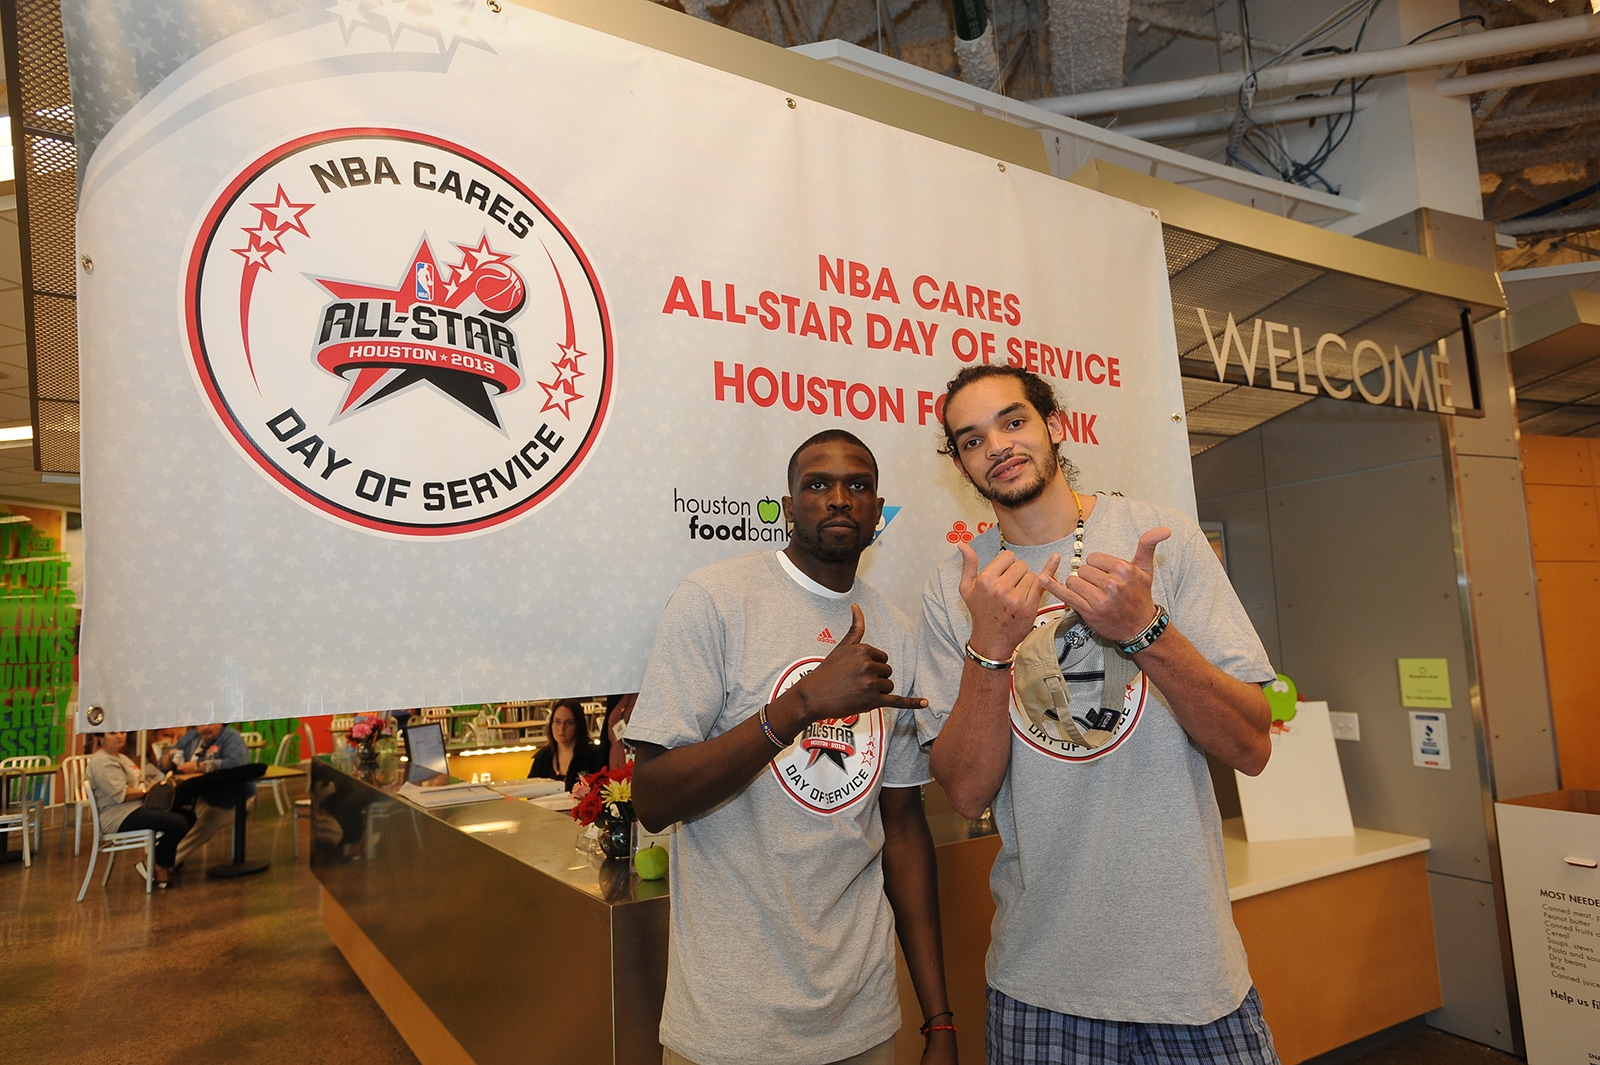 Luol Deng with Joakim Noah at an NBA Cares Event